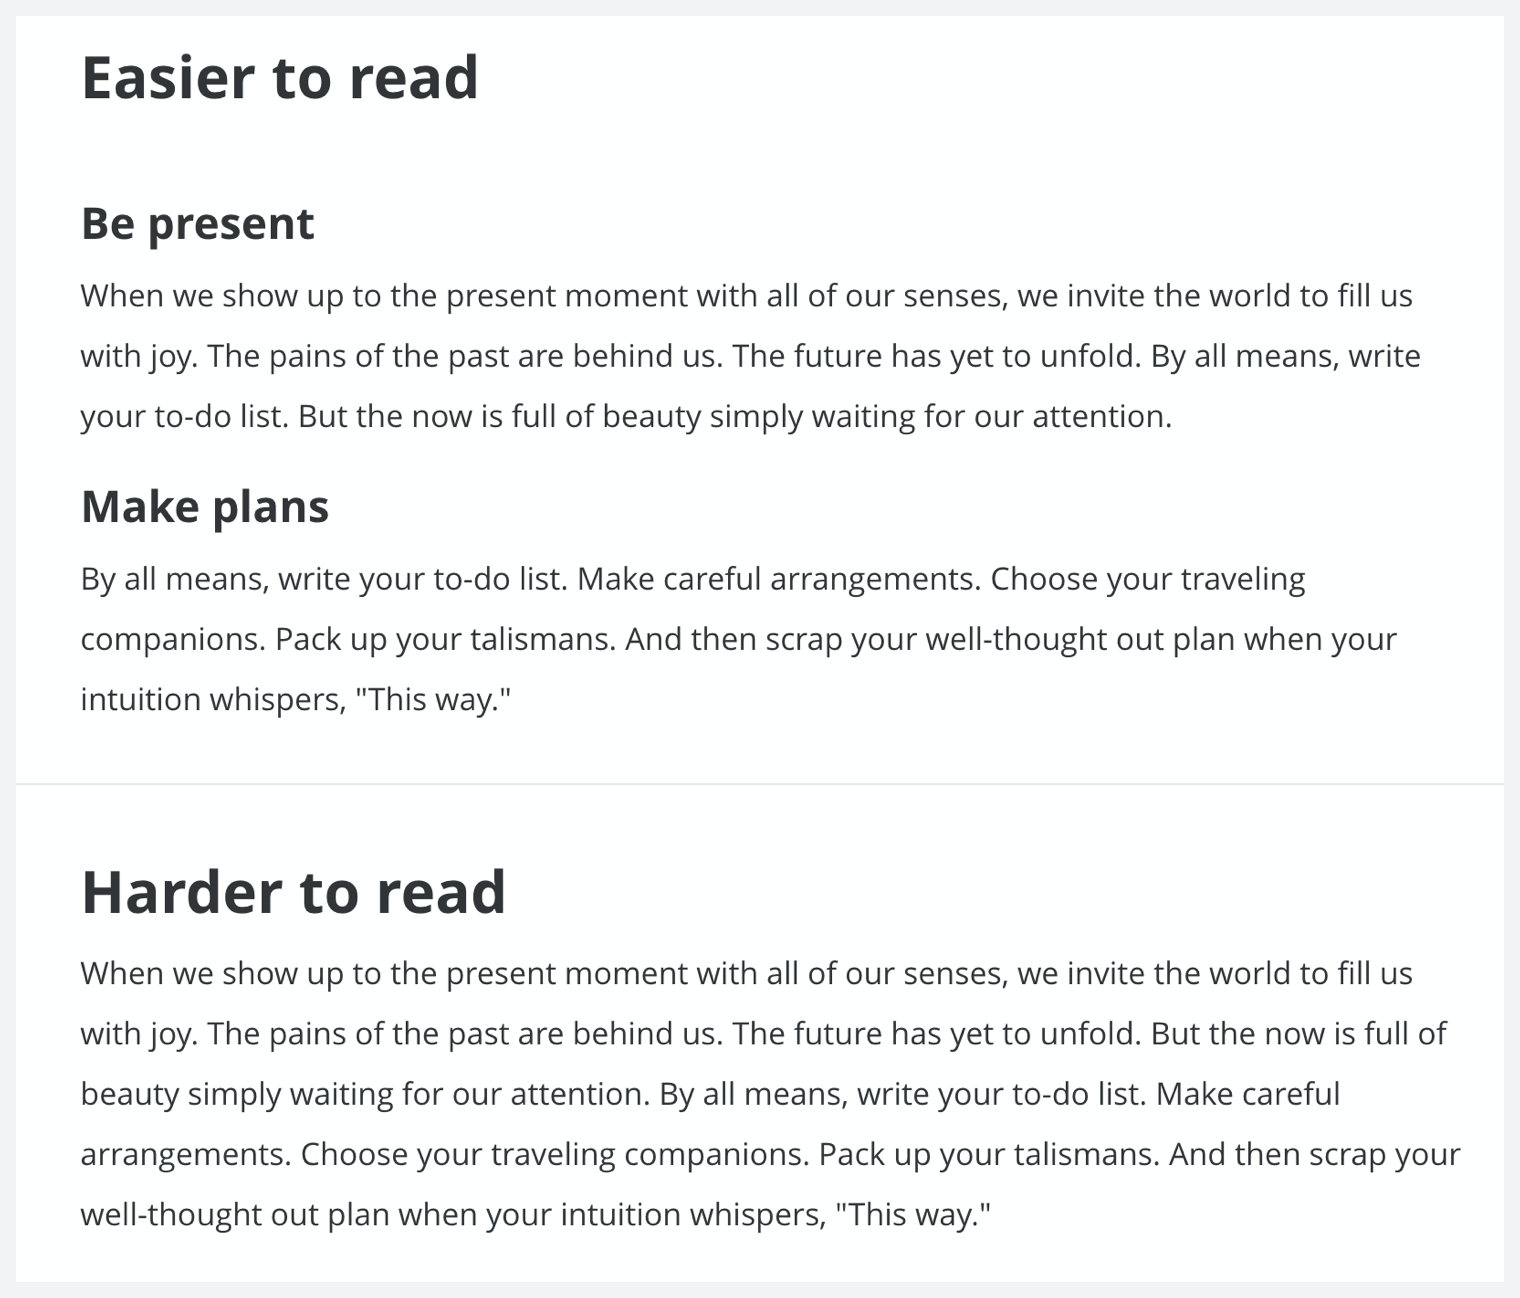 Image showing how headings improve readability